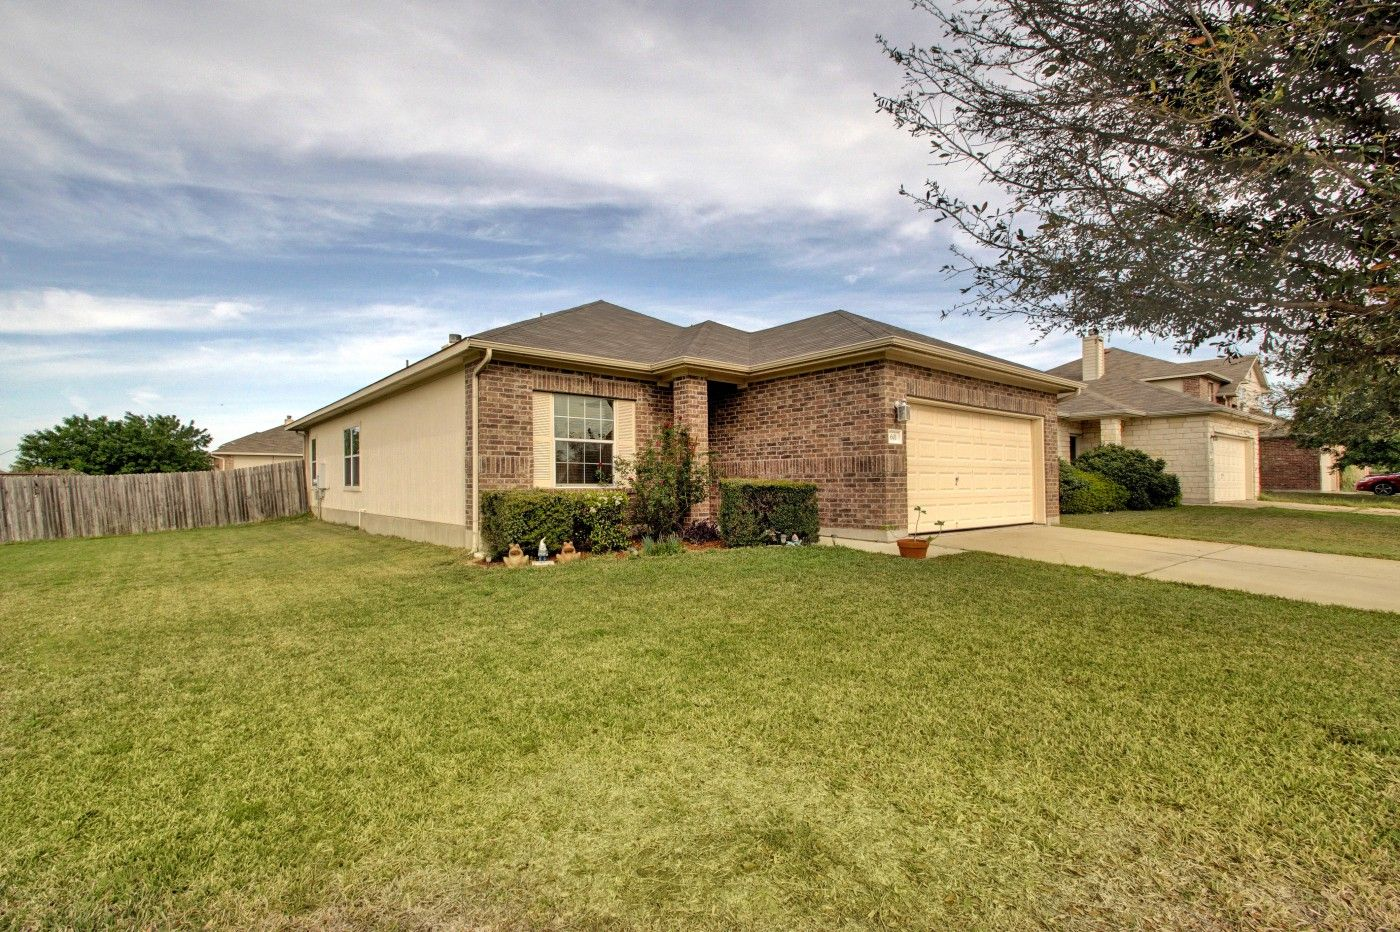 601 Wiley St., Hutto TX 78634 | GoodLife Realty | Spacious home ...